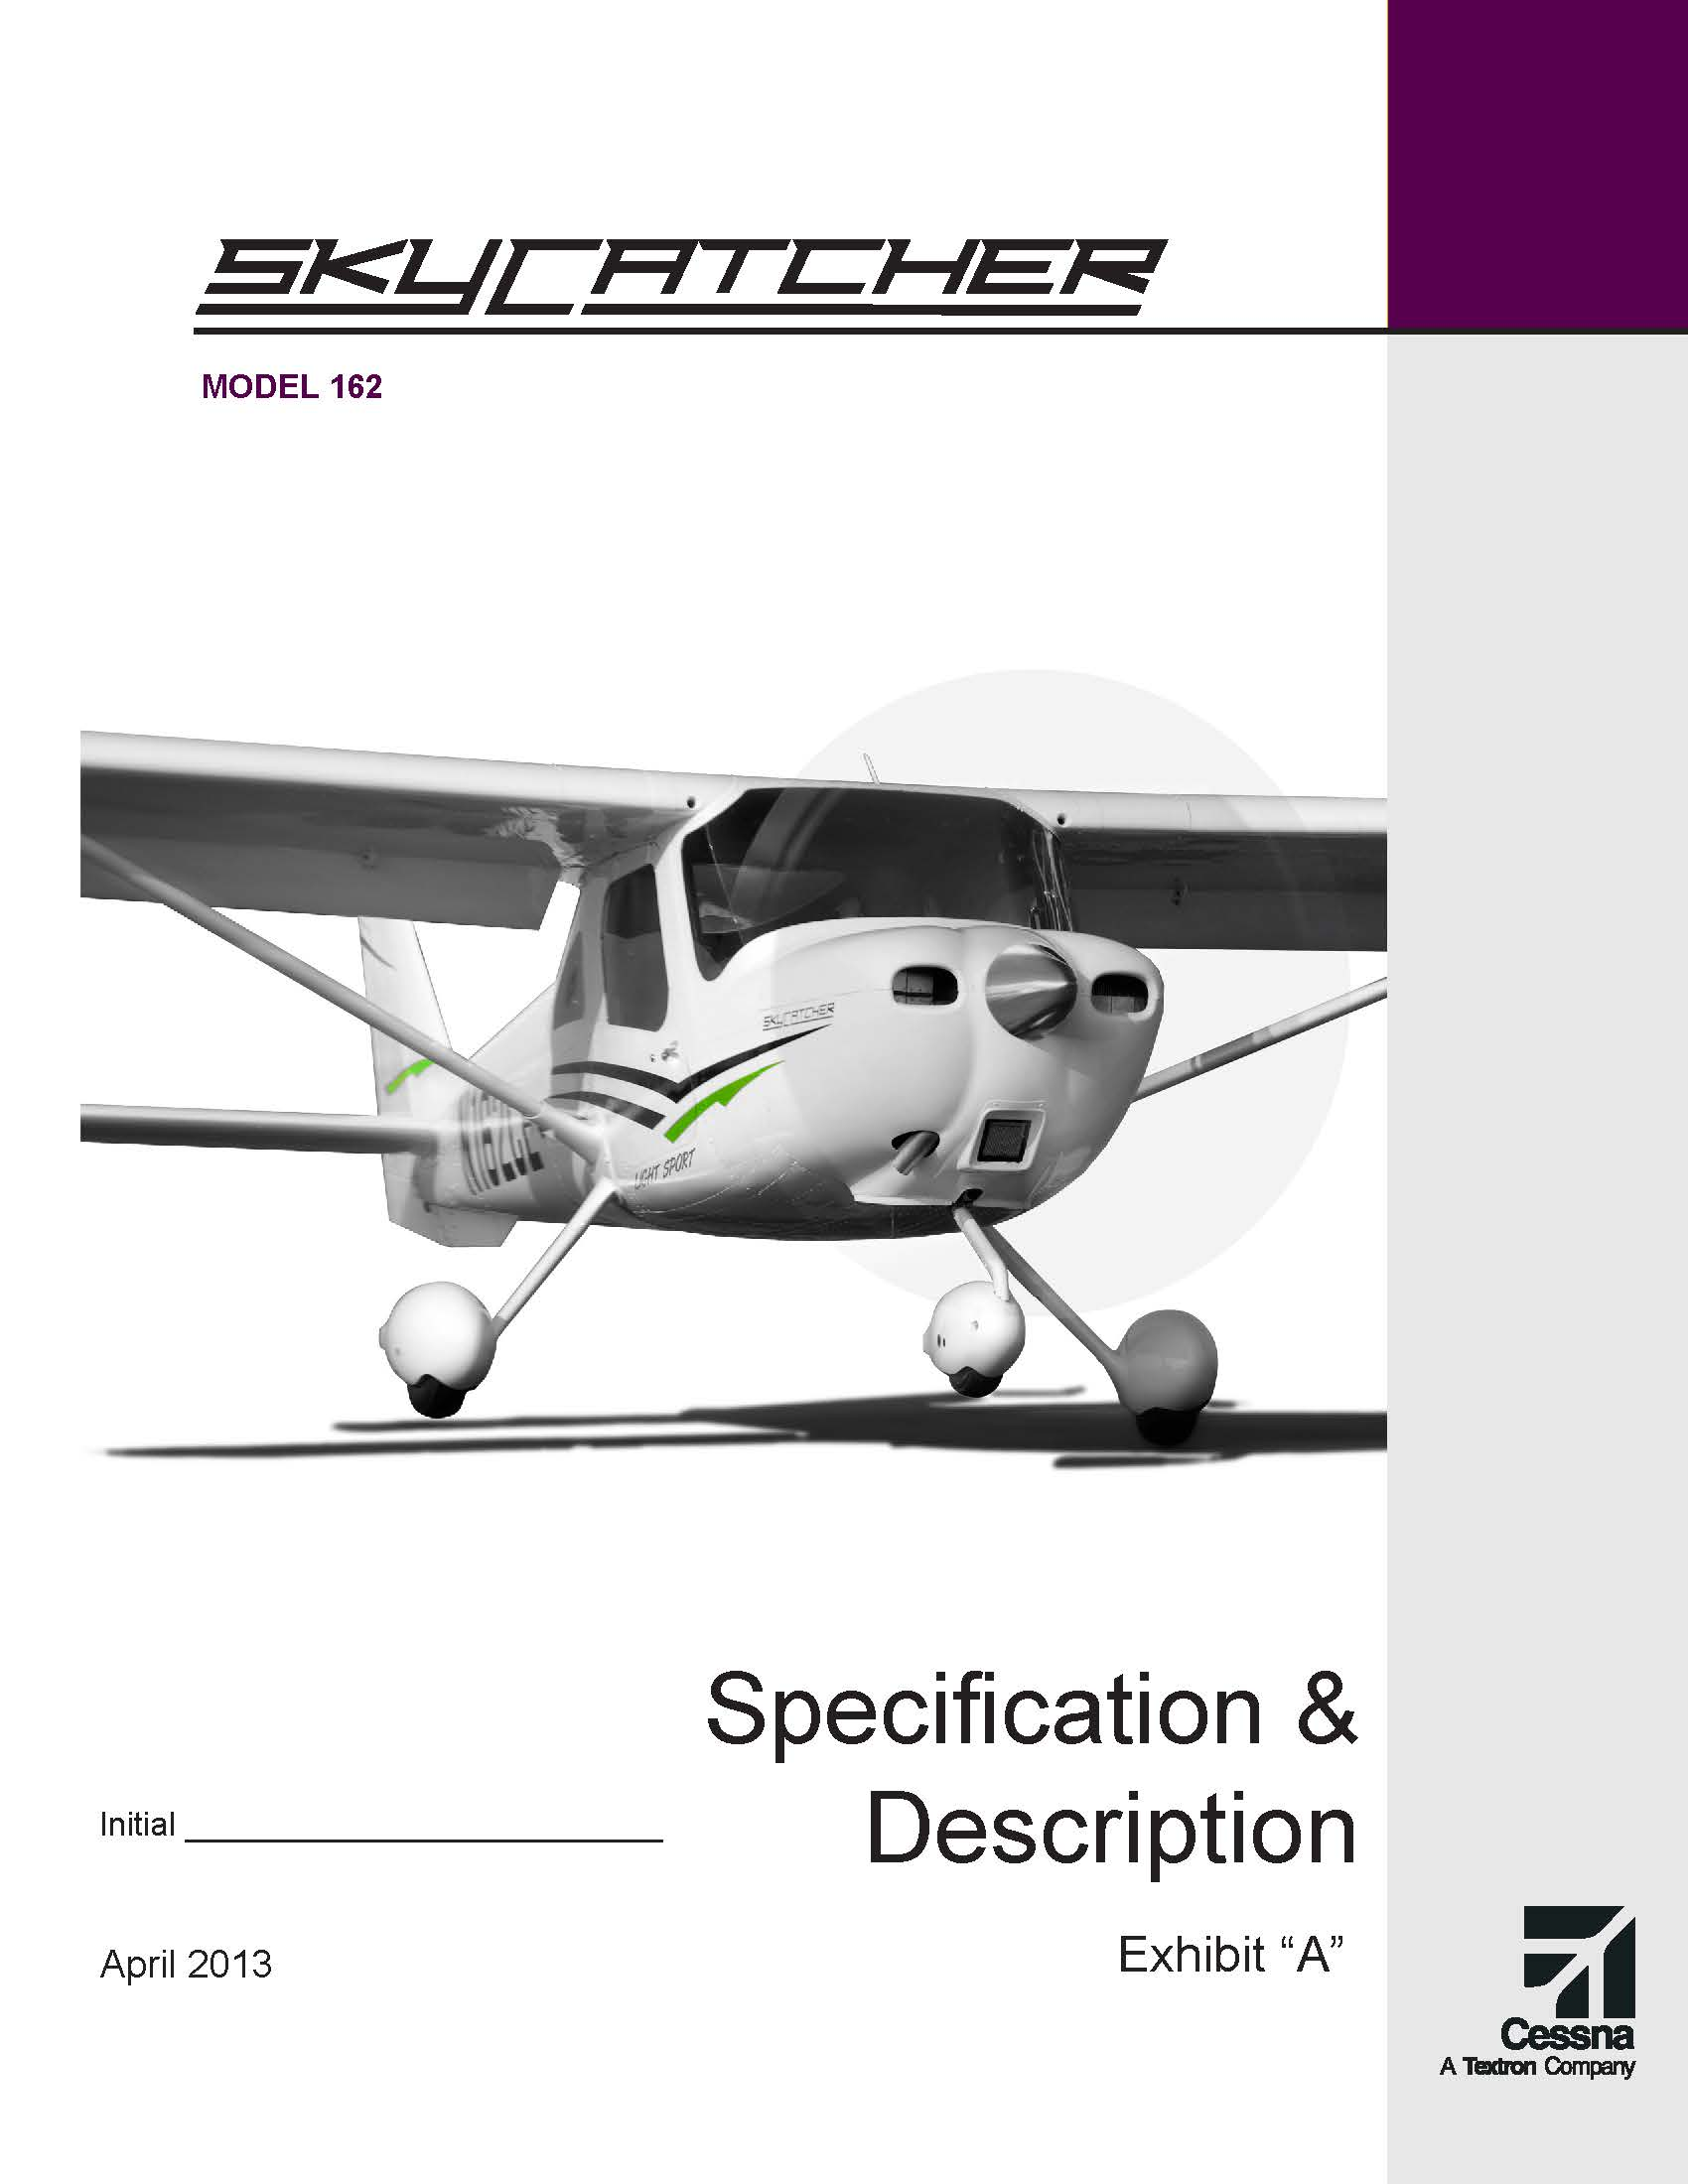 Cessna Skycatcher specification and description